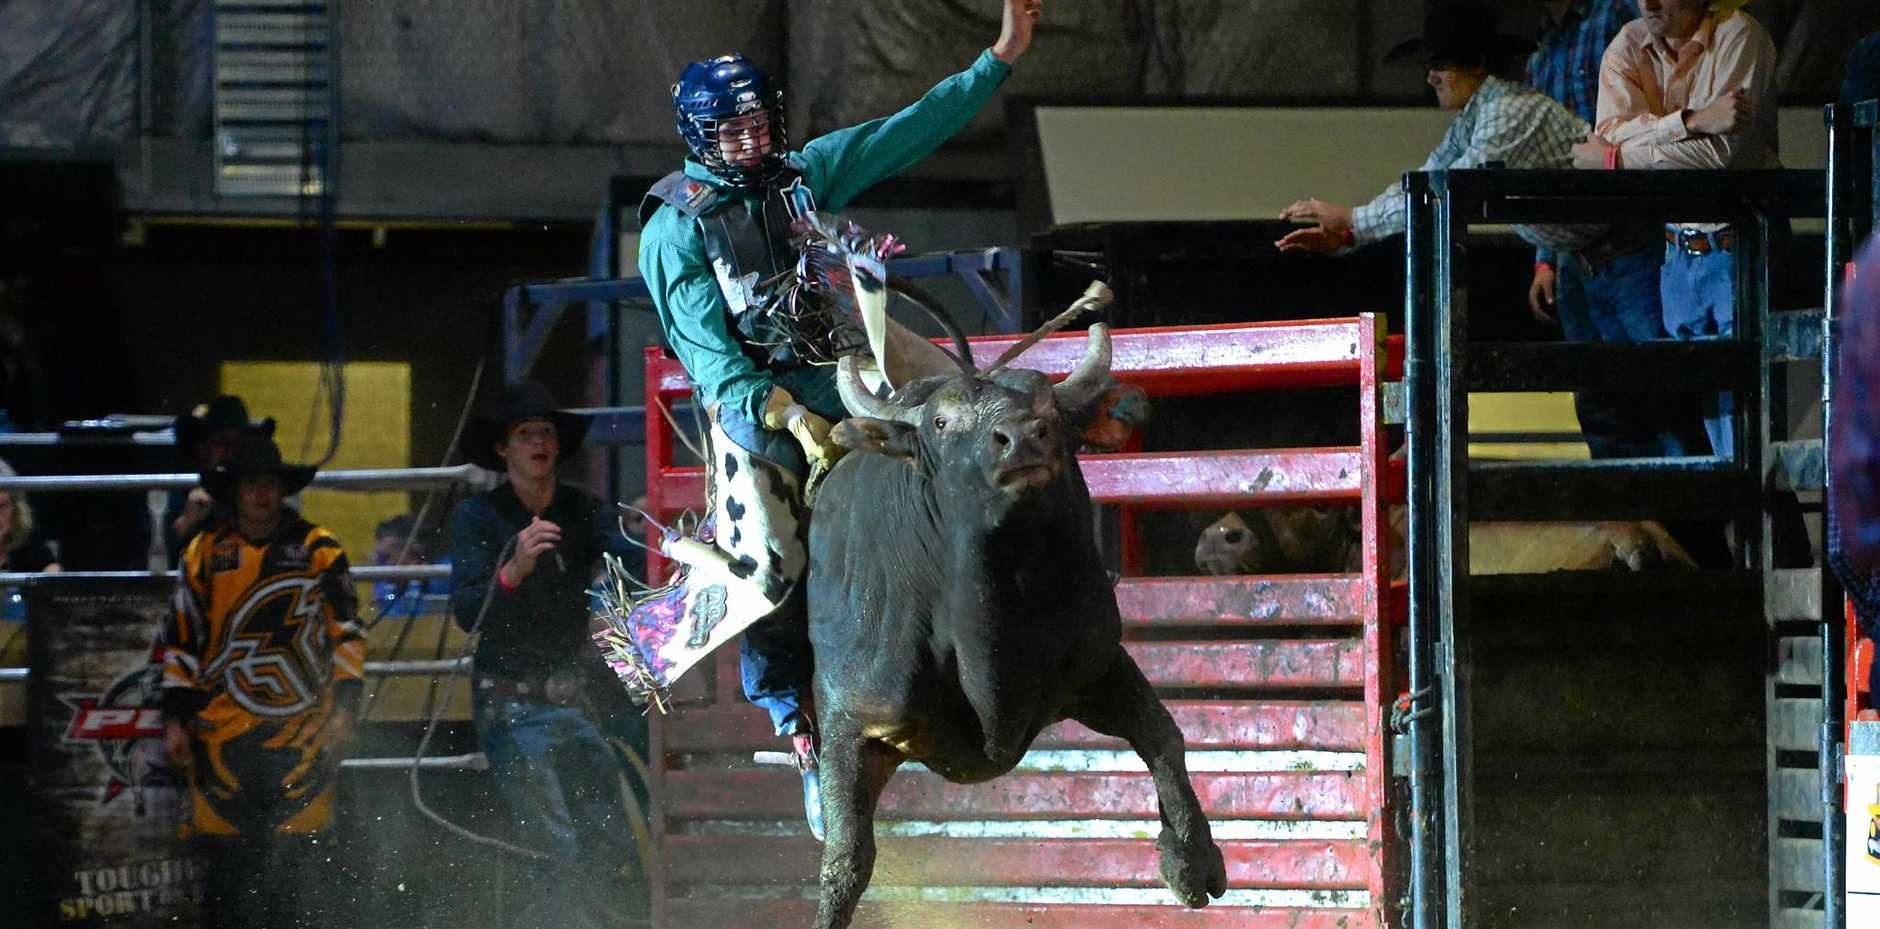 RIDE 'EM, COWBOY: Lane Mellers takes off on Mudslide at the Great Western Hotel PBR Challenge on Saturday night.